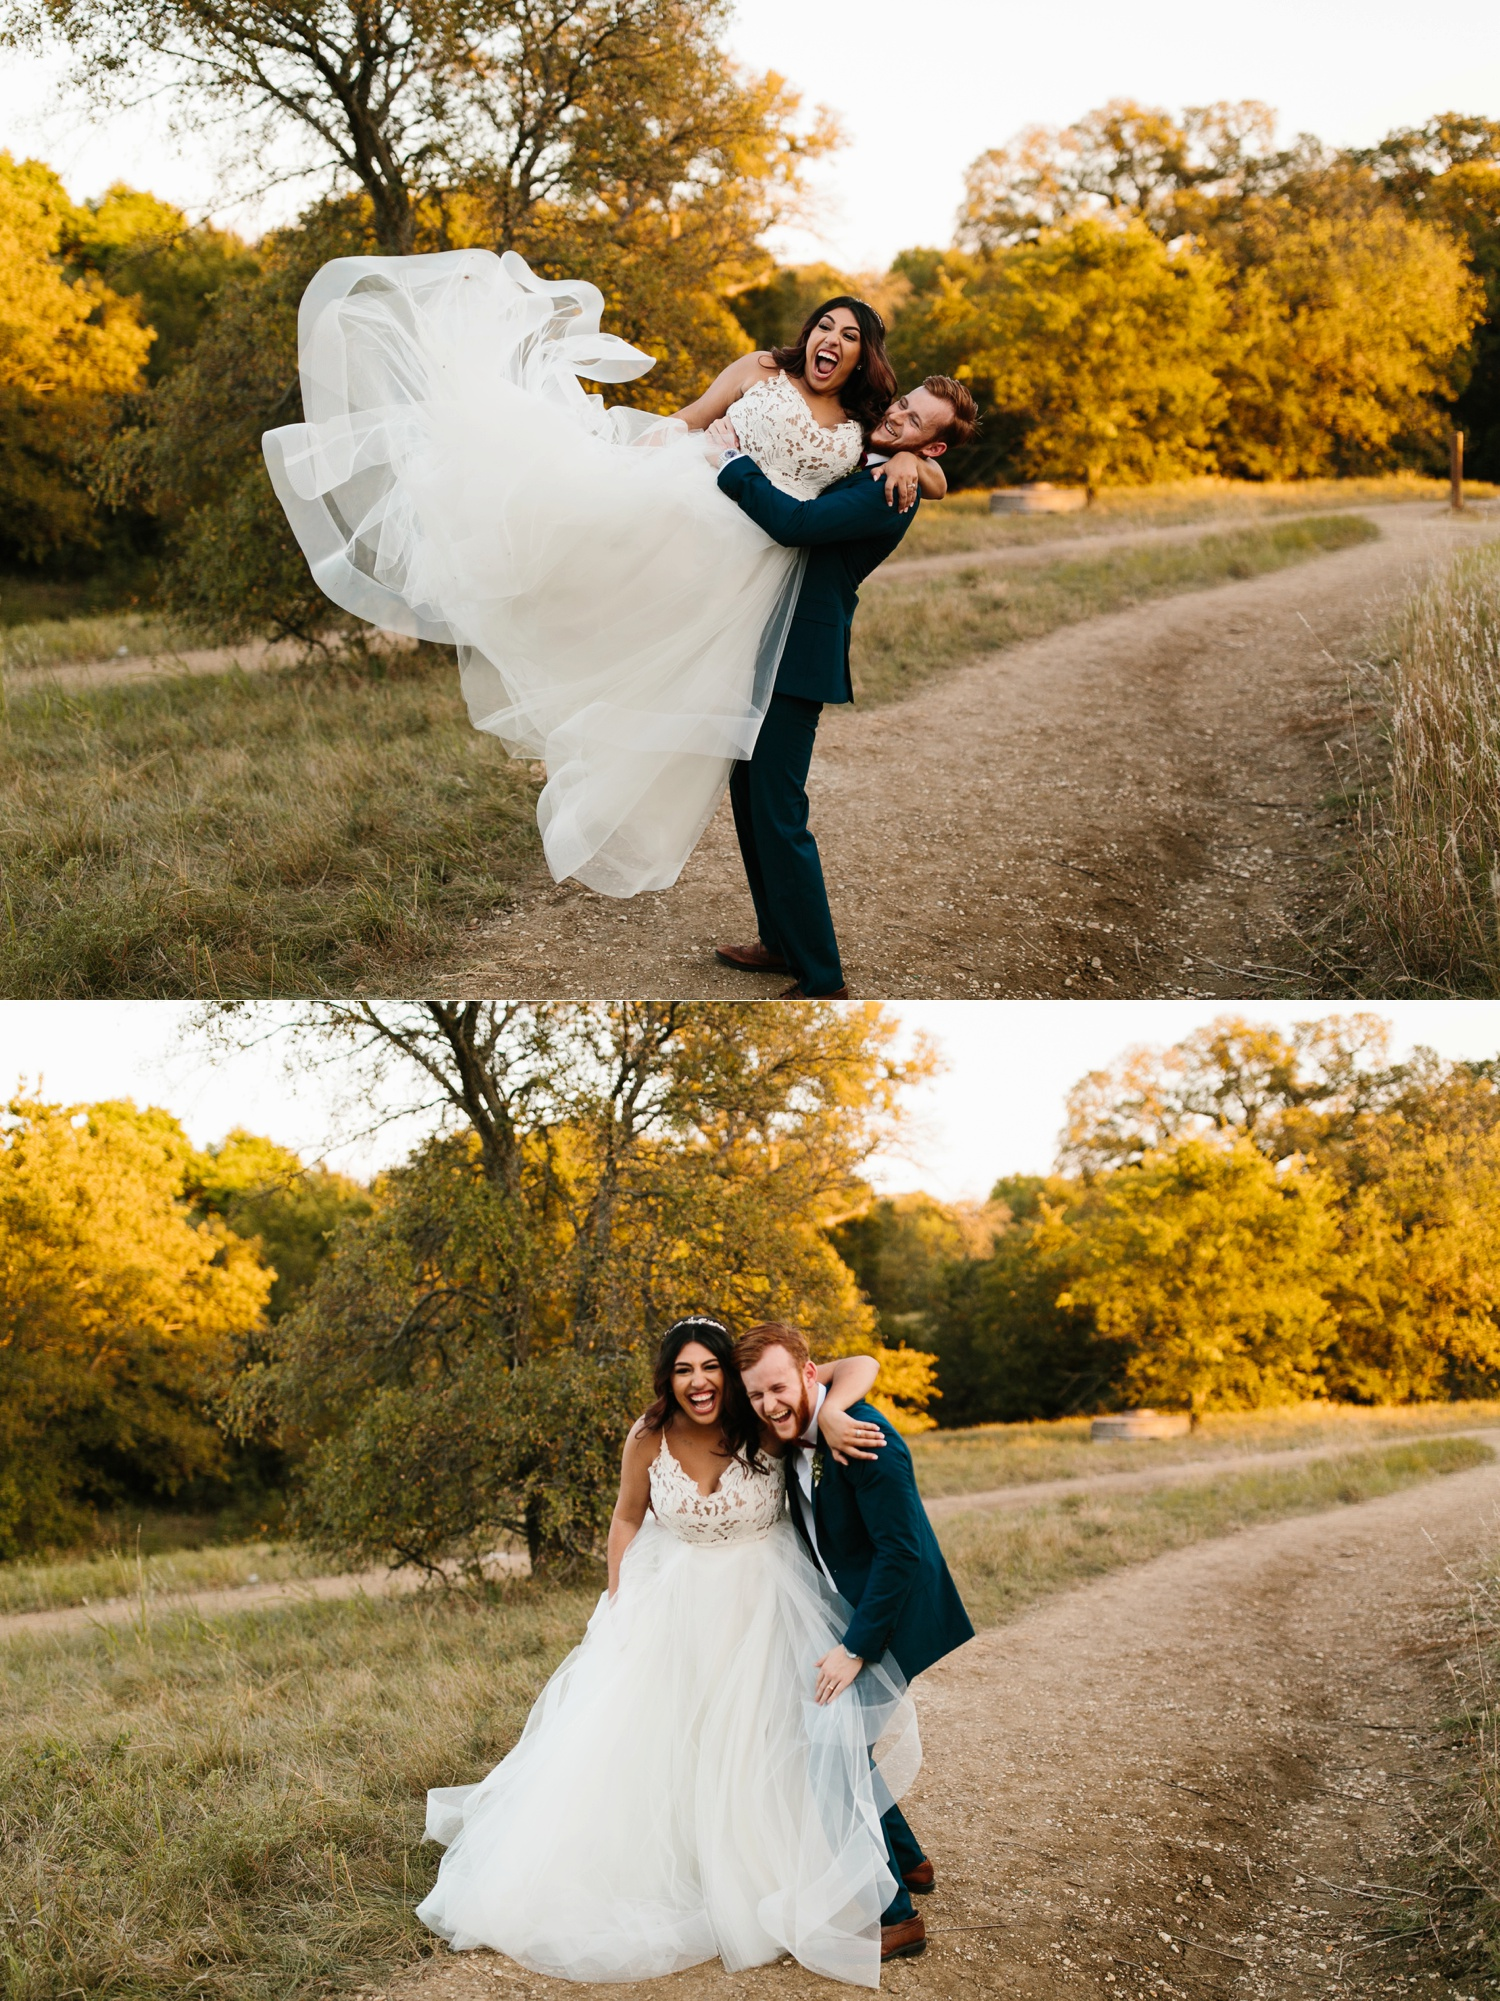 Grant + Lysette | a vibrant, deep burgundy and navy, and mixed metals wedding at Hidden Pines Chapel by North Texas Wedding Photographer Rachel Meagan Photography 249